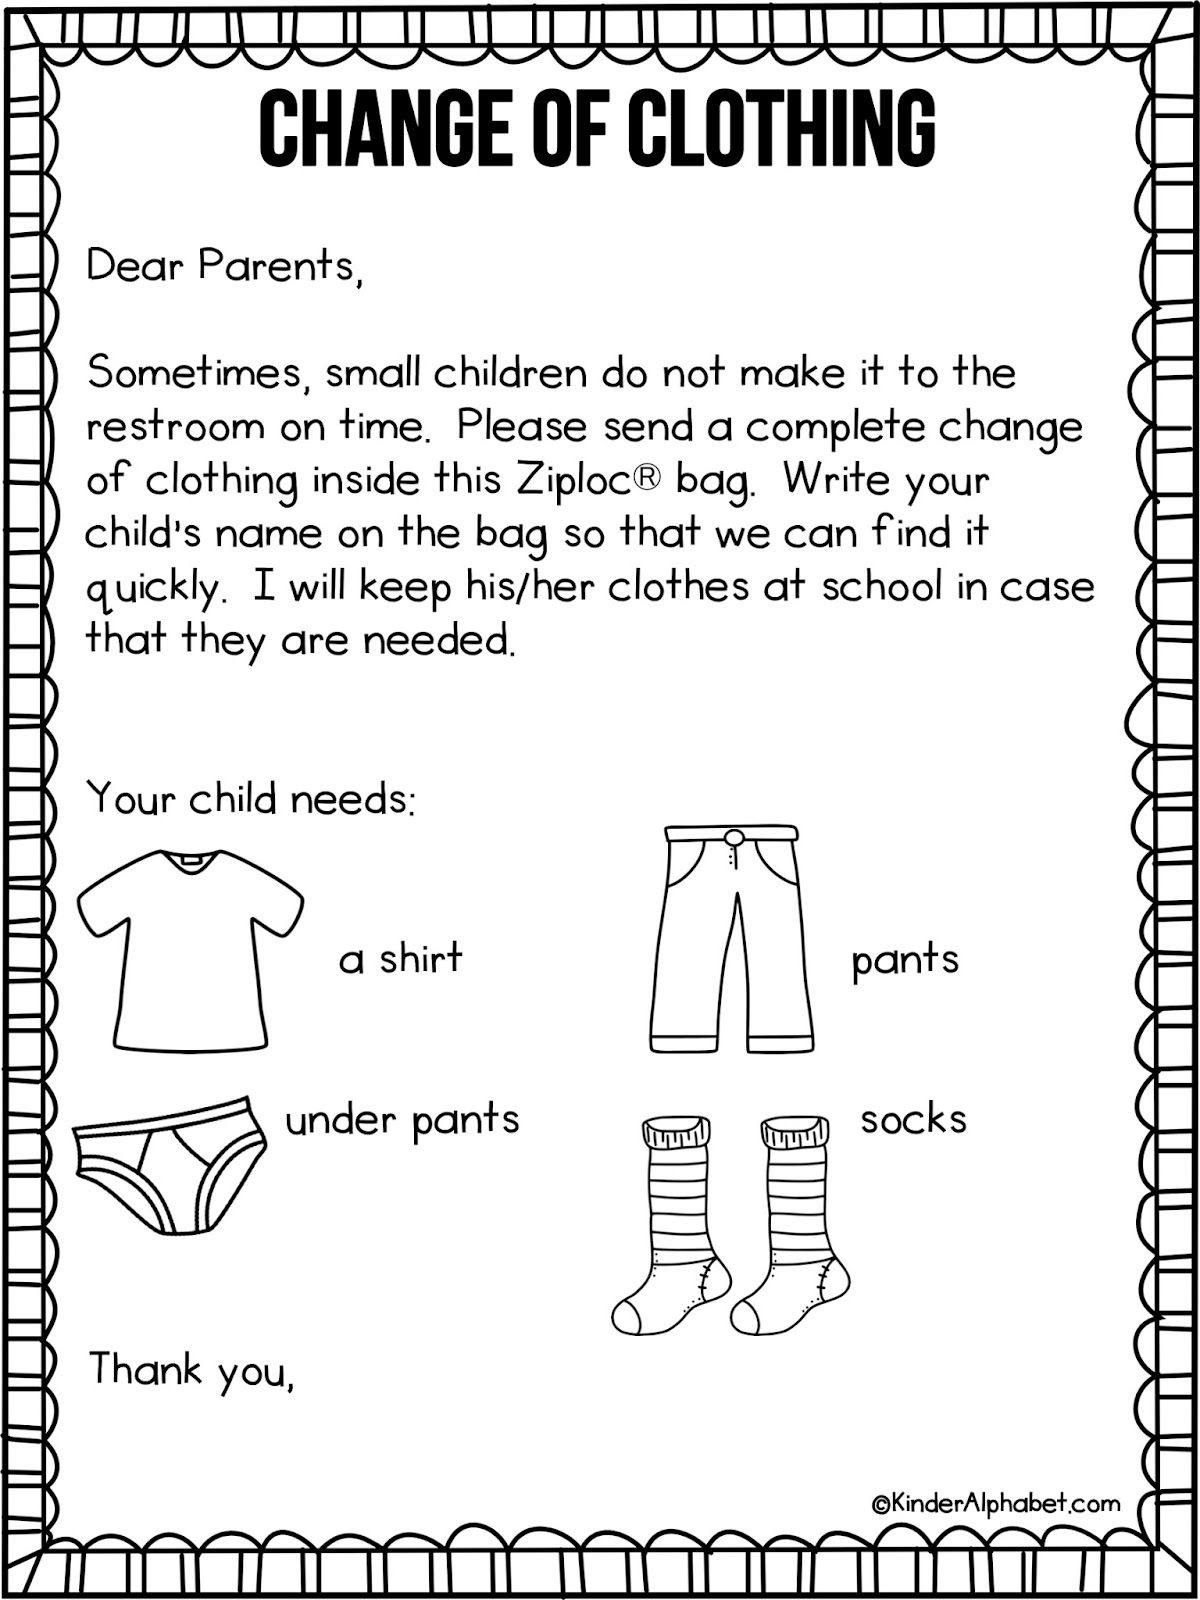 Parent Letter For Change Of Clothing Free From Kinderalphabet Via Freebielicious Probably